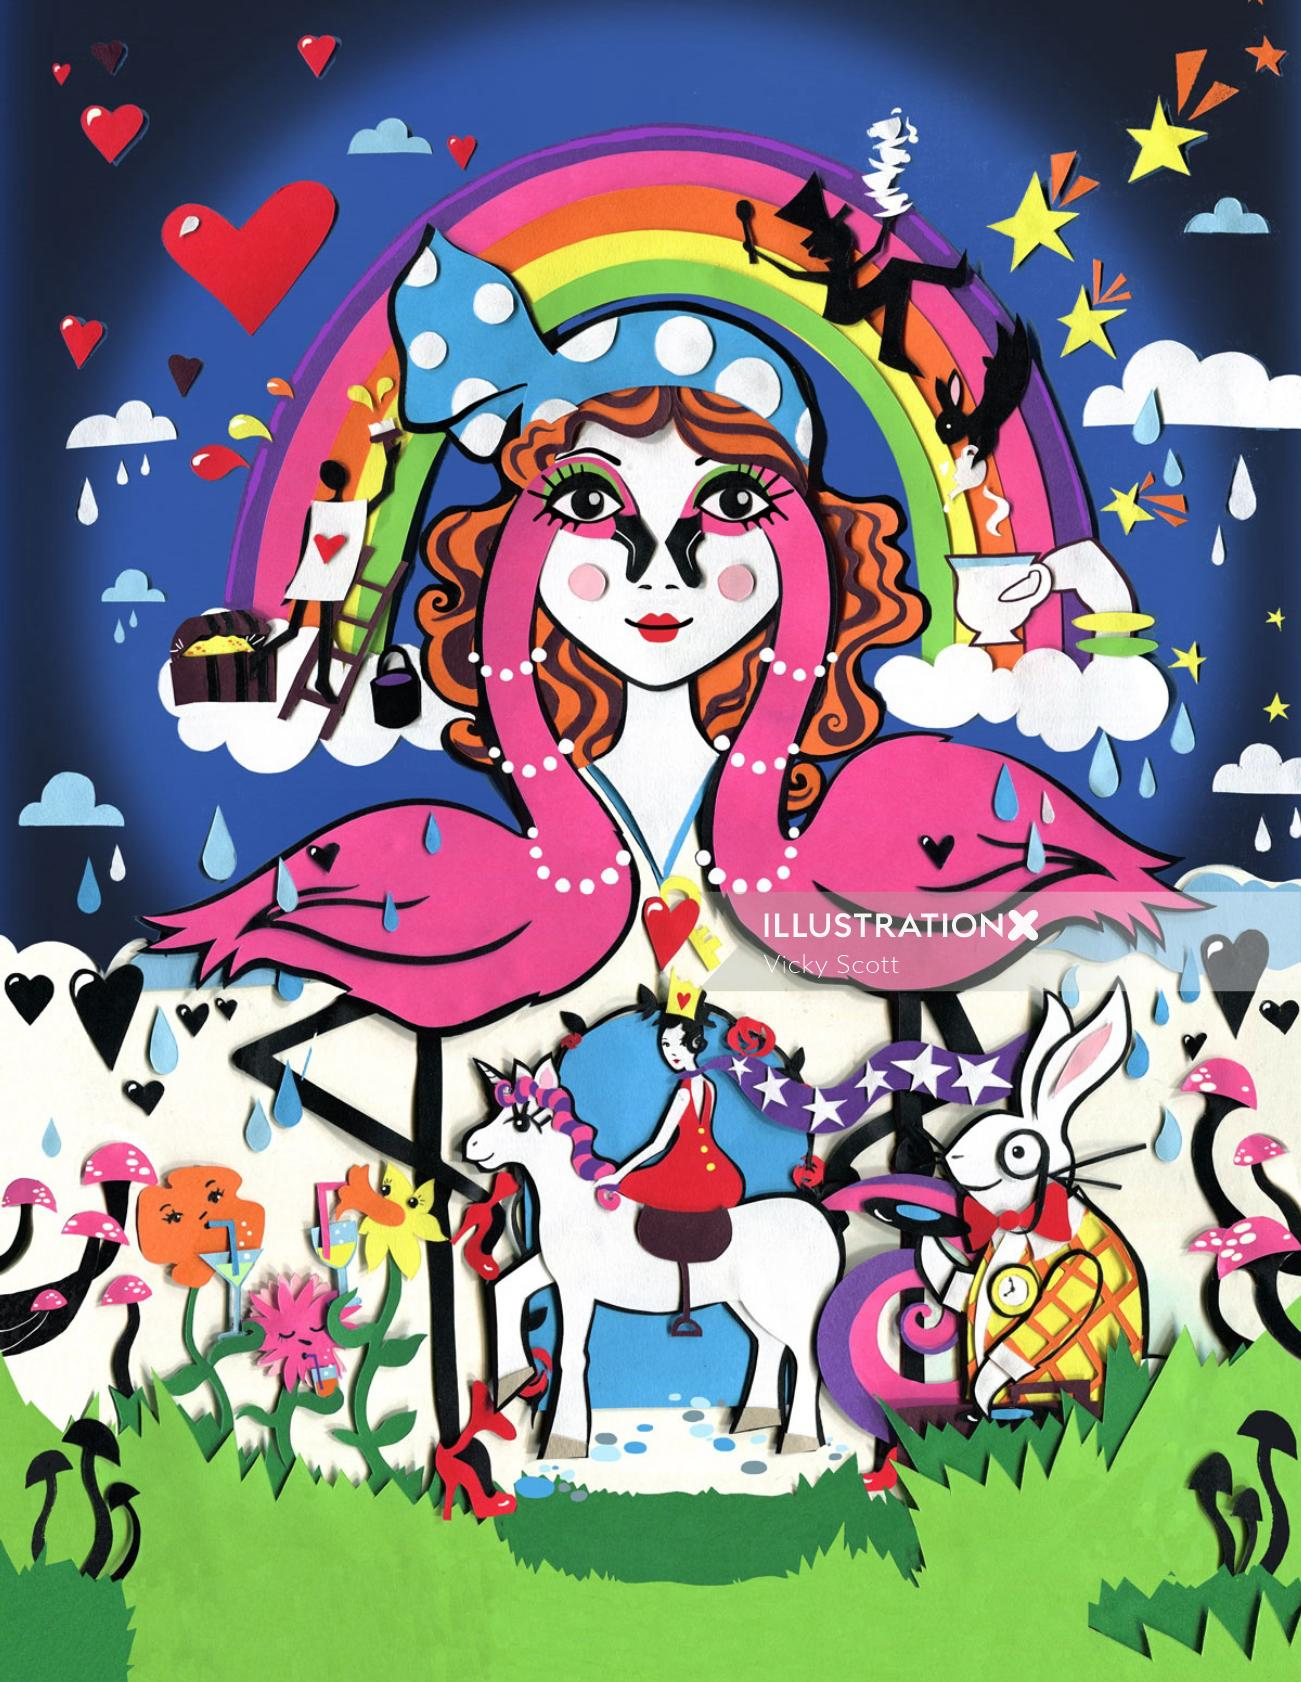 wonderland, flamingo, rabbit, unicorn, rainbow, flowers, mushroom, hearts, stars, dj, birds